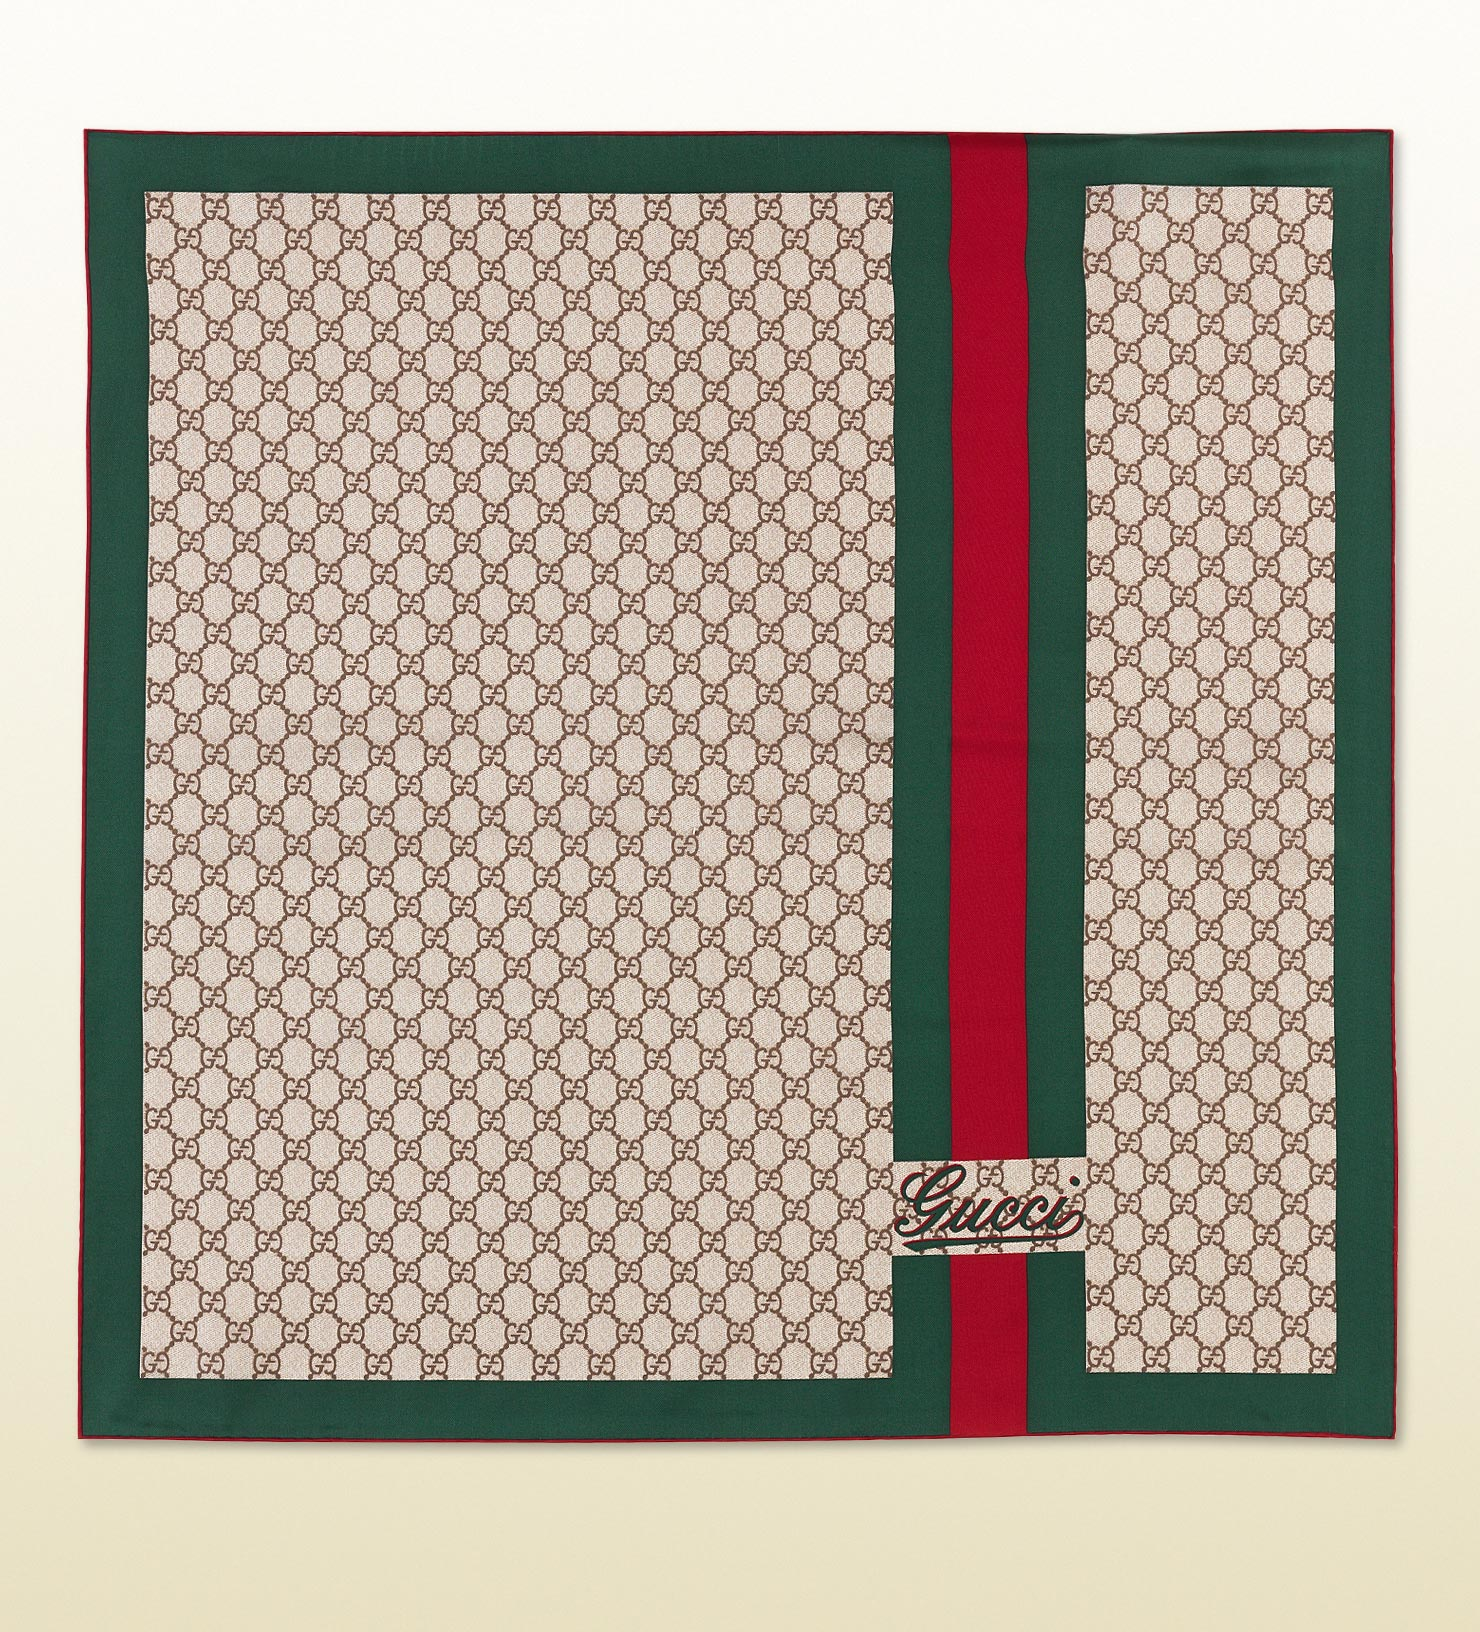 Lyst - Gucci Gg Pattern Carre with Gucci Script and Web ...